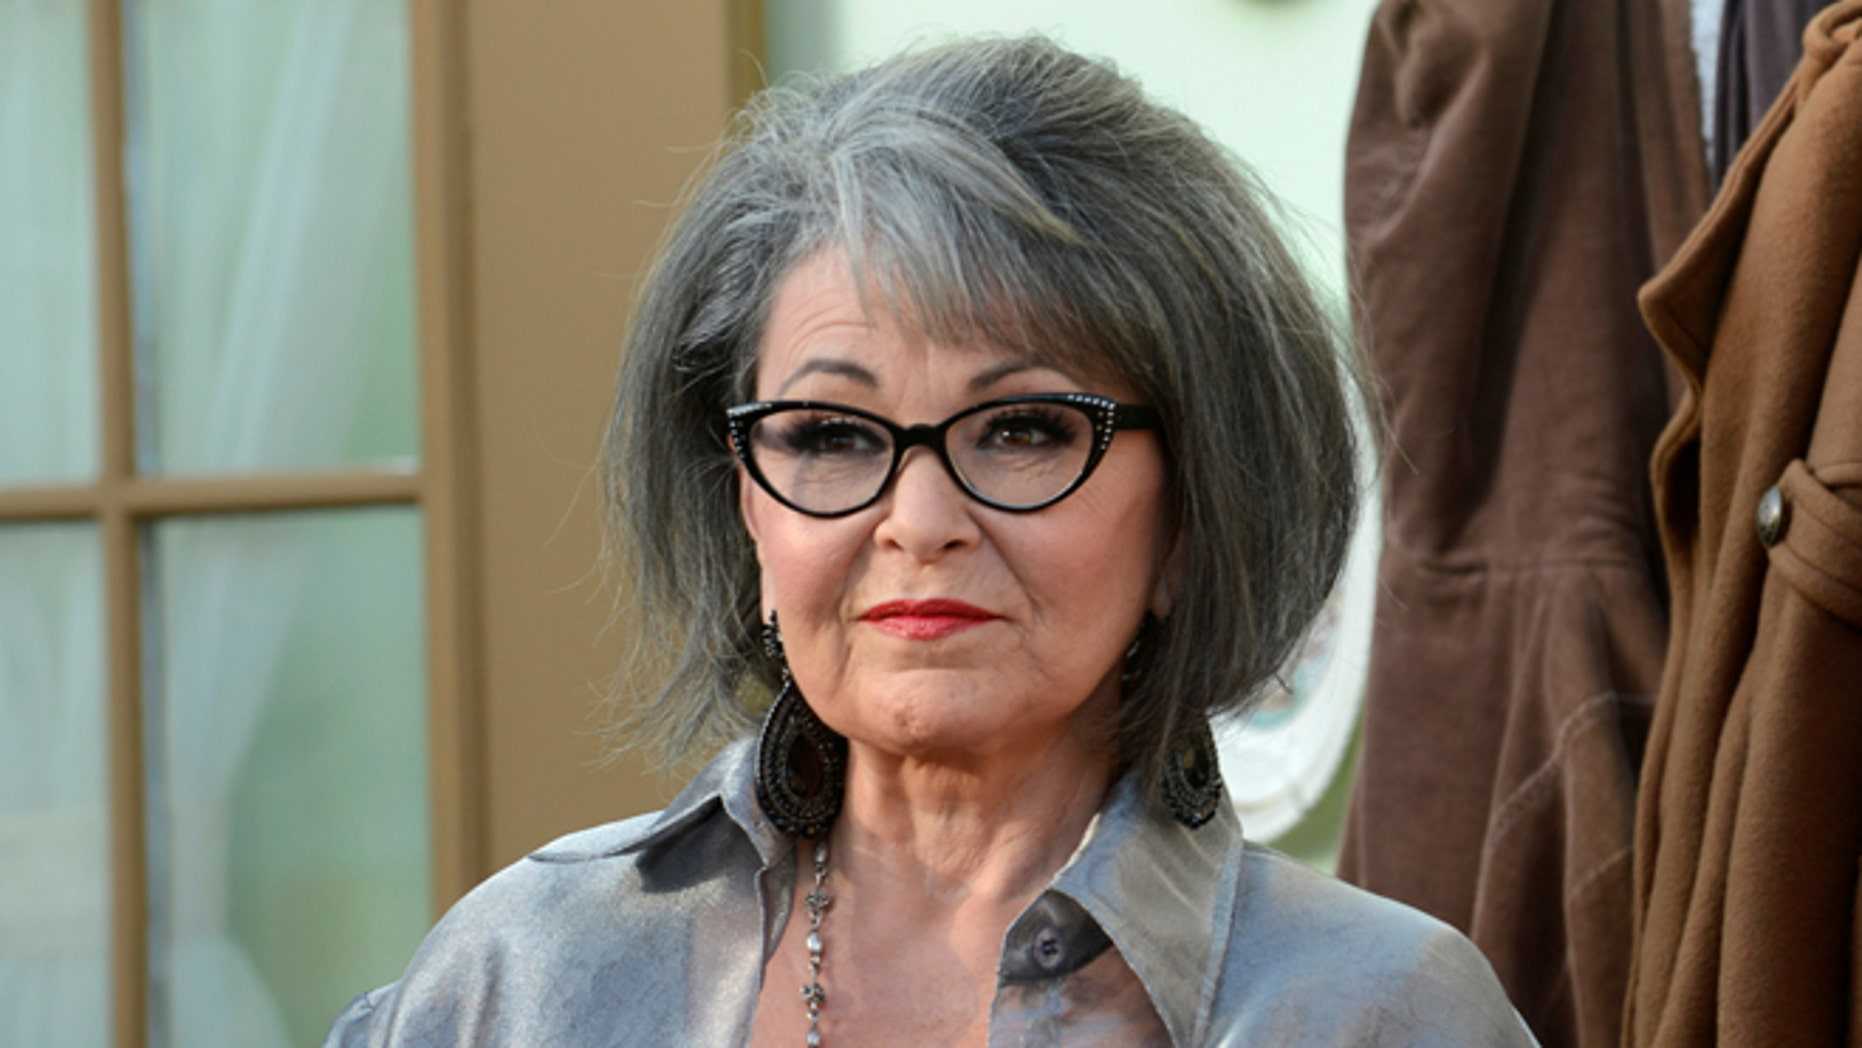 FILE PHOTO: Actress Rosanne Barr arrives for the taping of the Comedy Central Roast of Roseanne in Los Angeles, U.S., August 4, 2012. REUTERS/Phil McCarten/File Photo - RTS14E2M